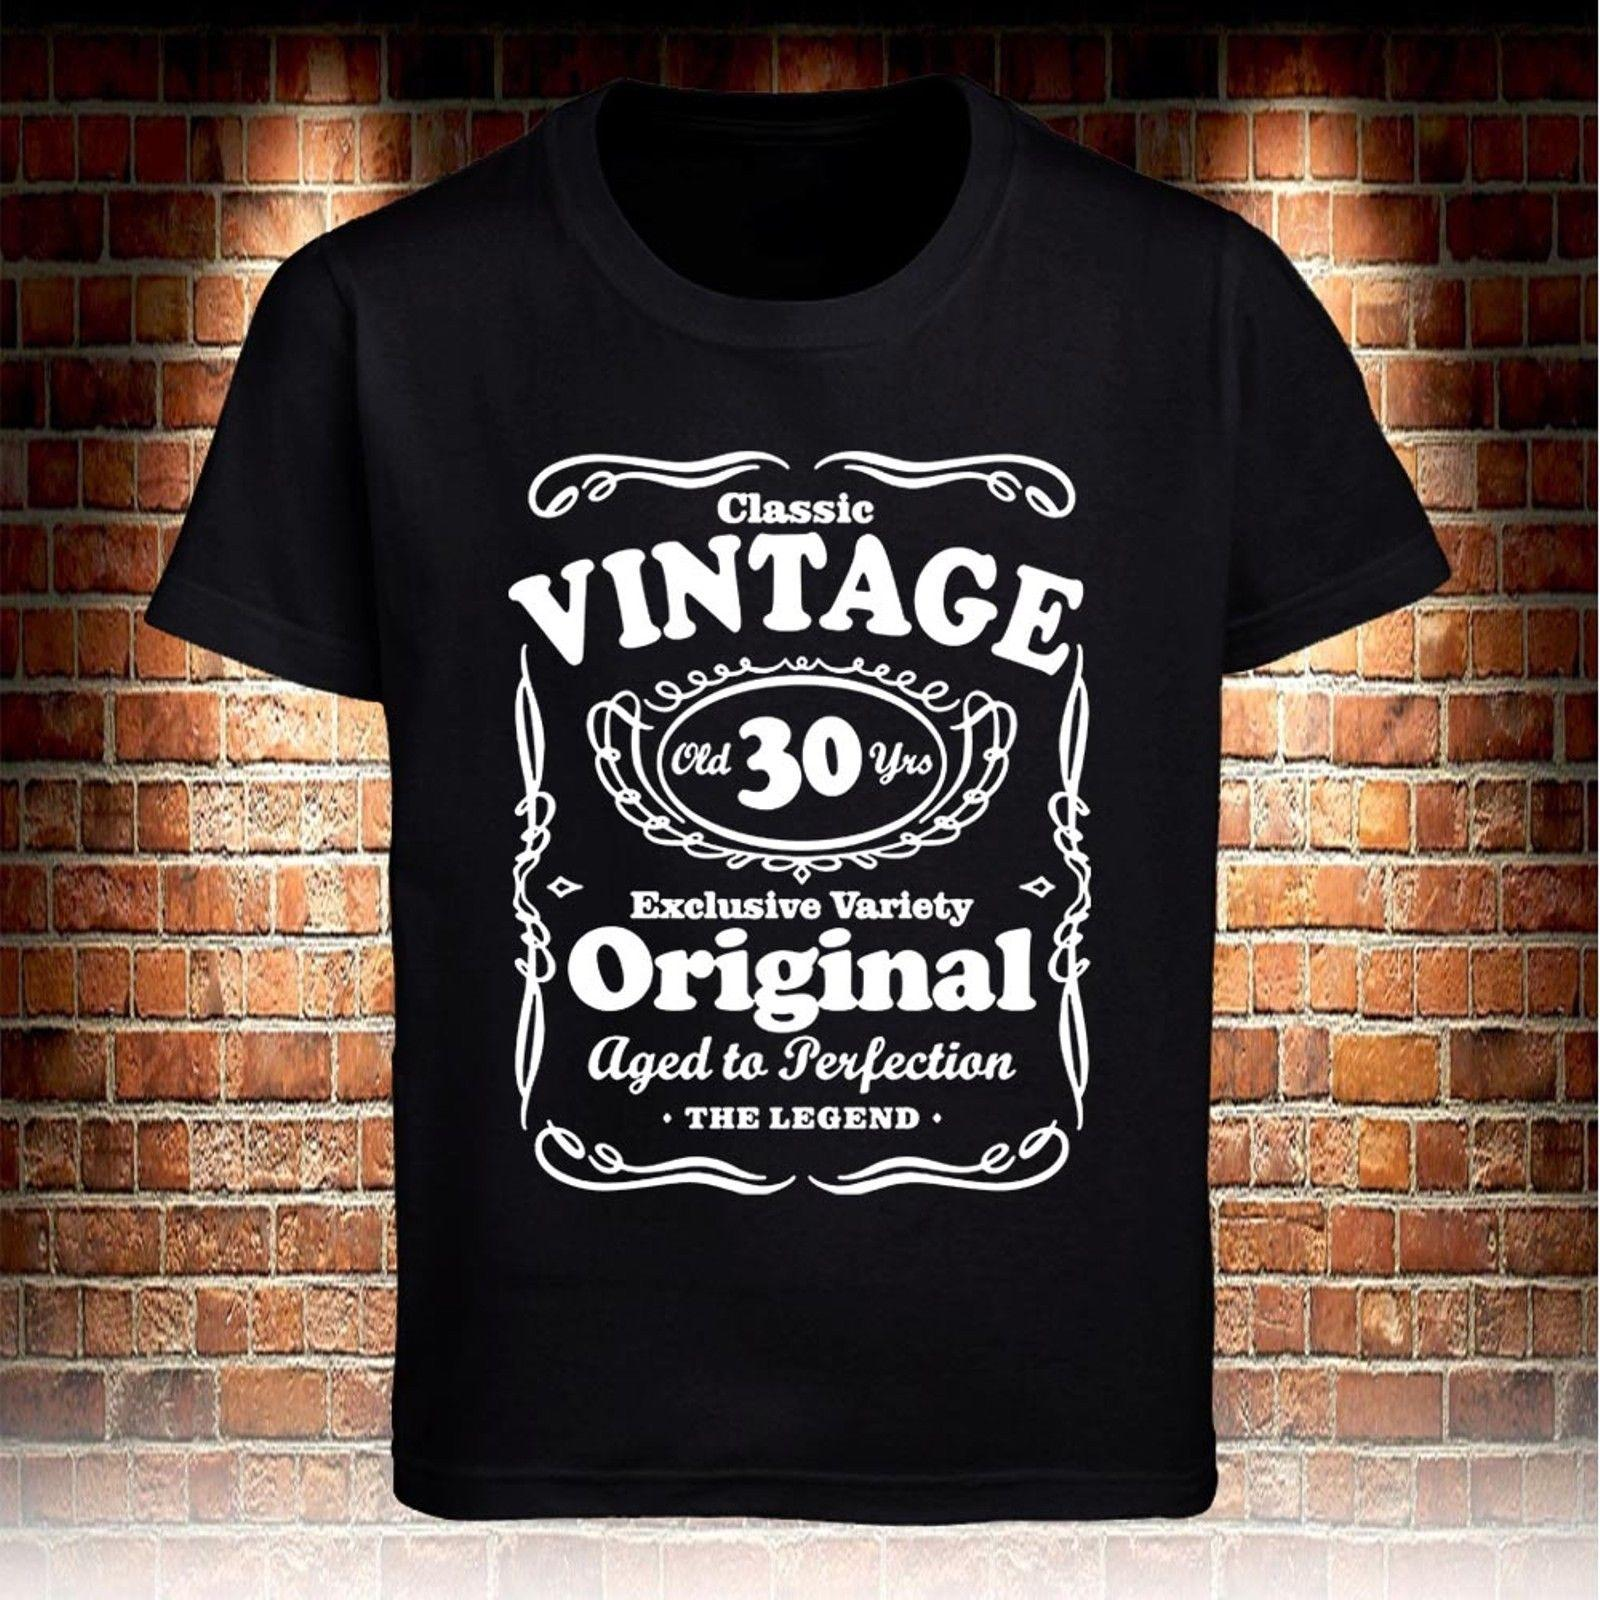 0a07c3c36 Vintage 30th Birthday Gift Age Perfection Funny Black Mens T-shirt Size S to  3XL O-neck Fashion Printed mens Cotton T-shirt Round Neck man's